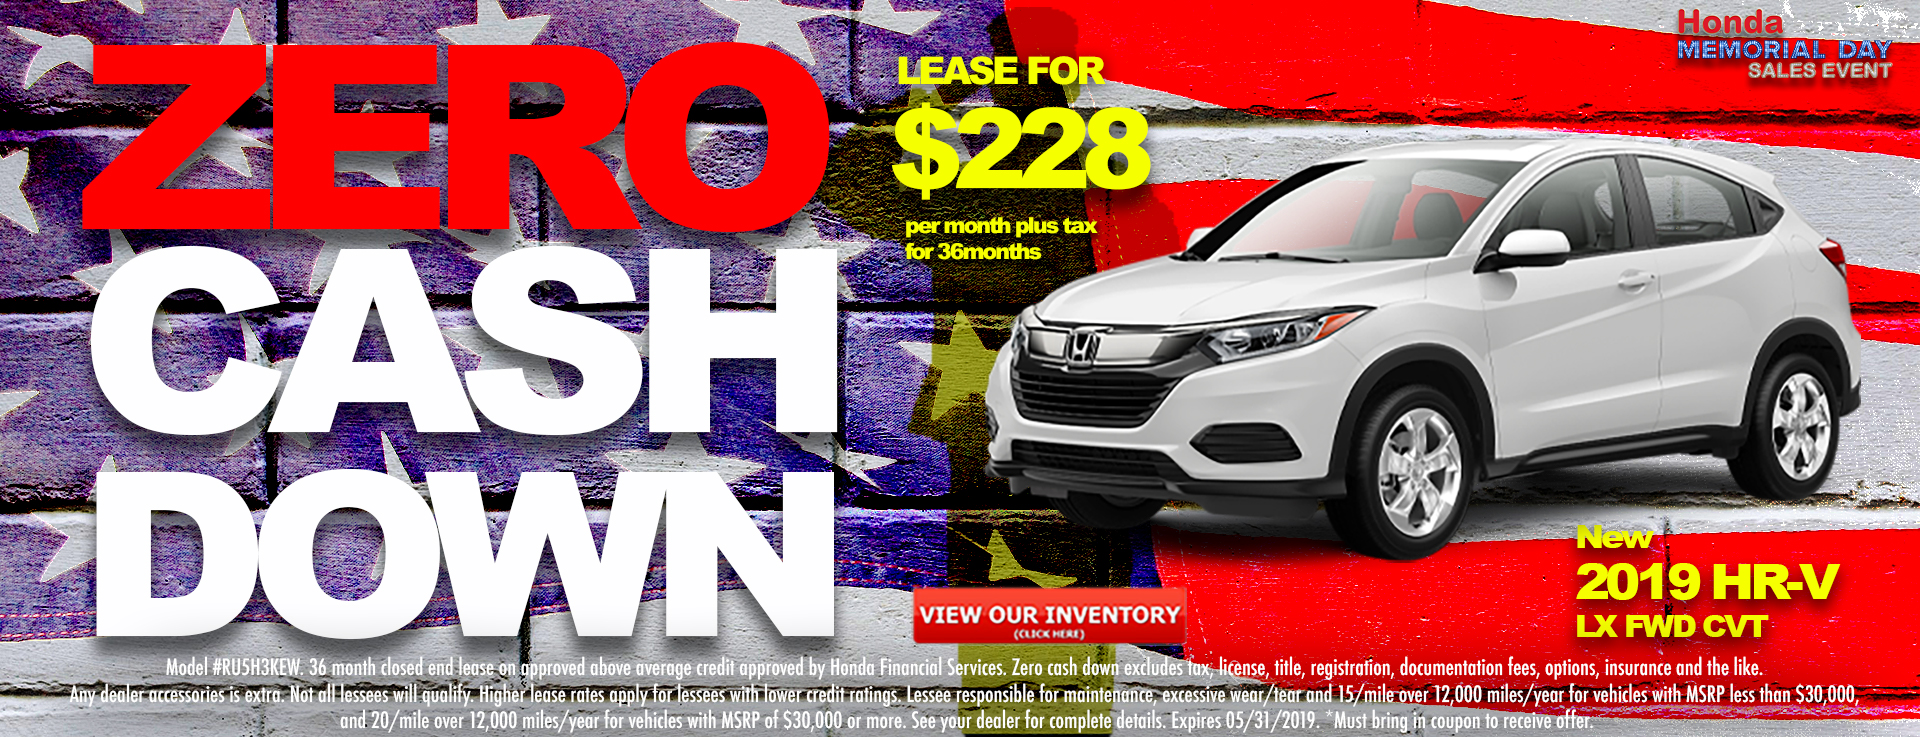 Honda HR-V $228 Lease